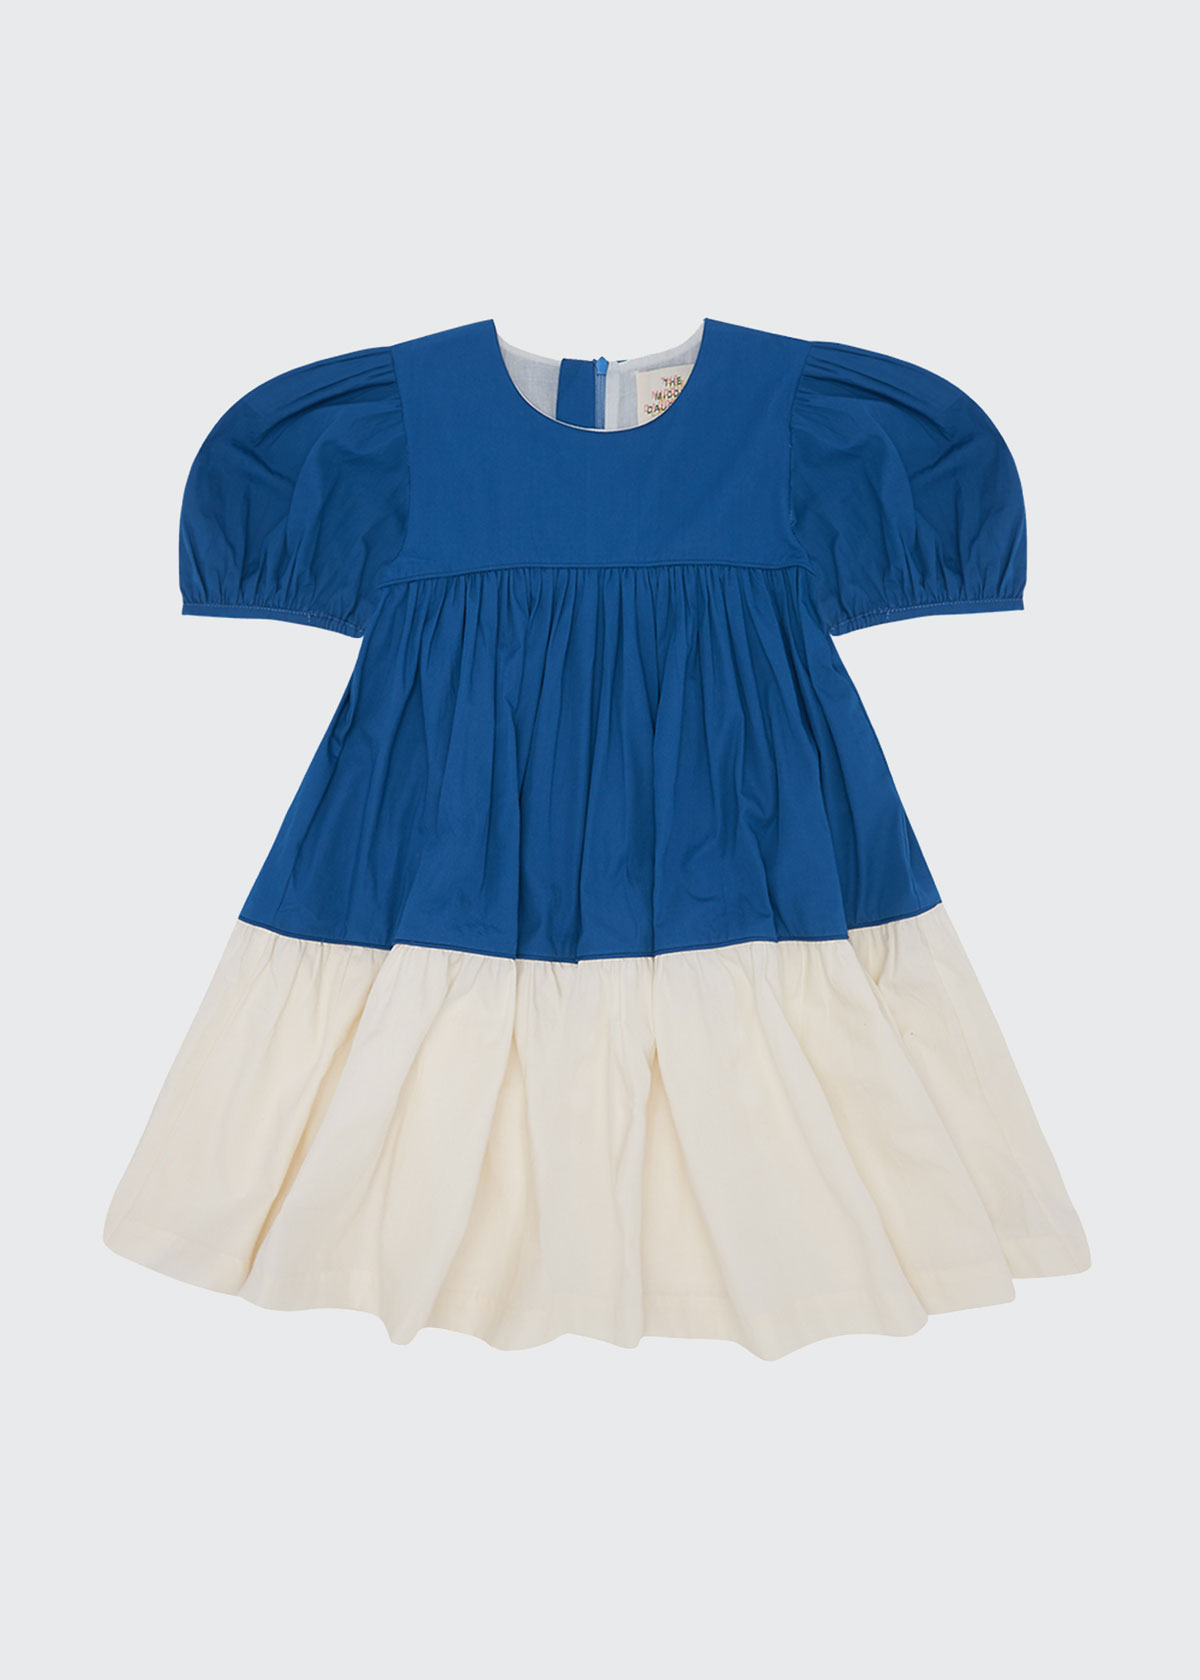 The Middle Daughter Cottons GIRL'S PUFF-SLEEVE TIERED COLORBLOCK DRESS